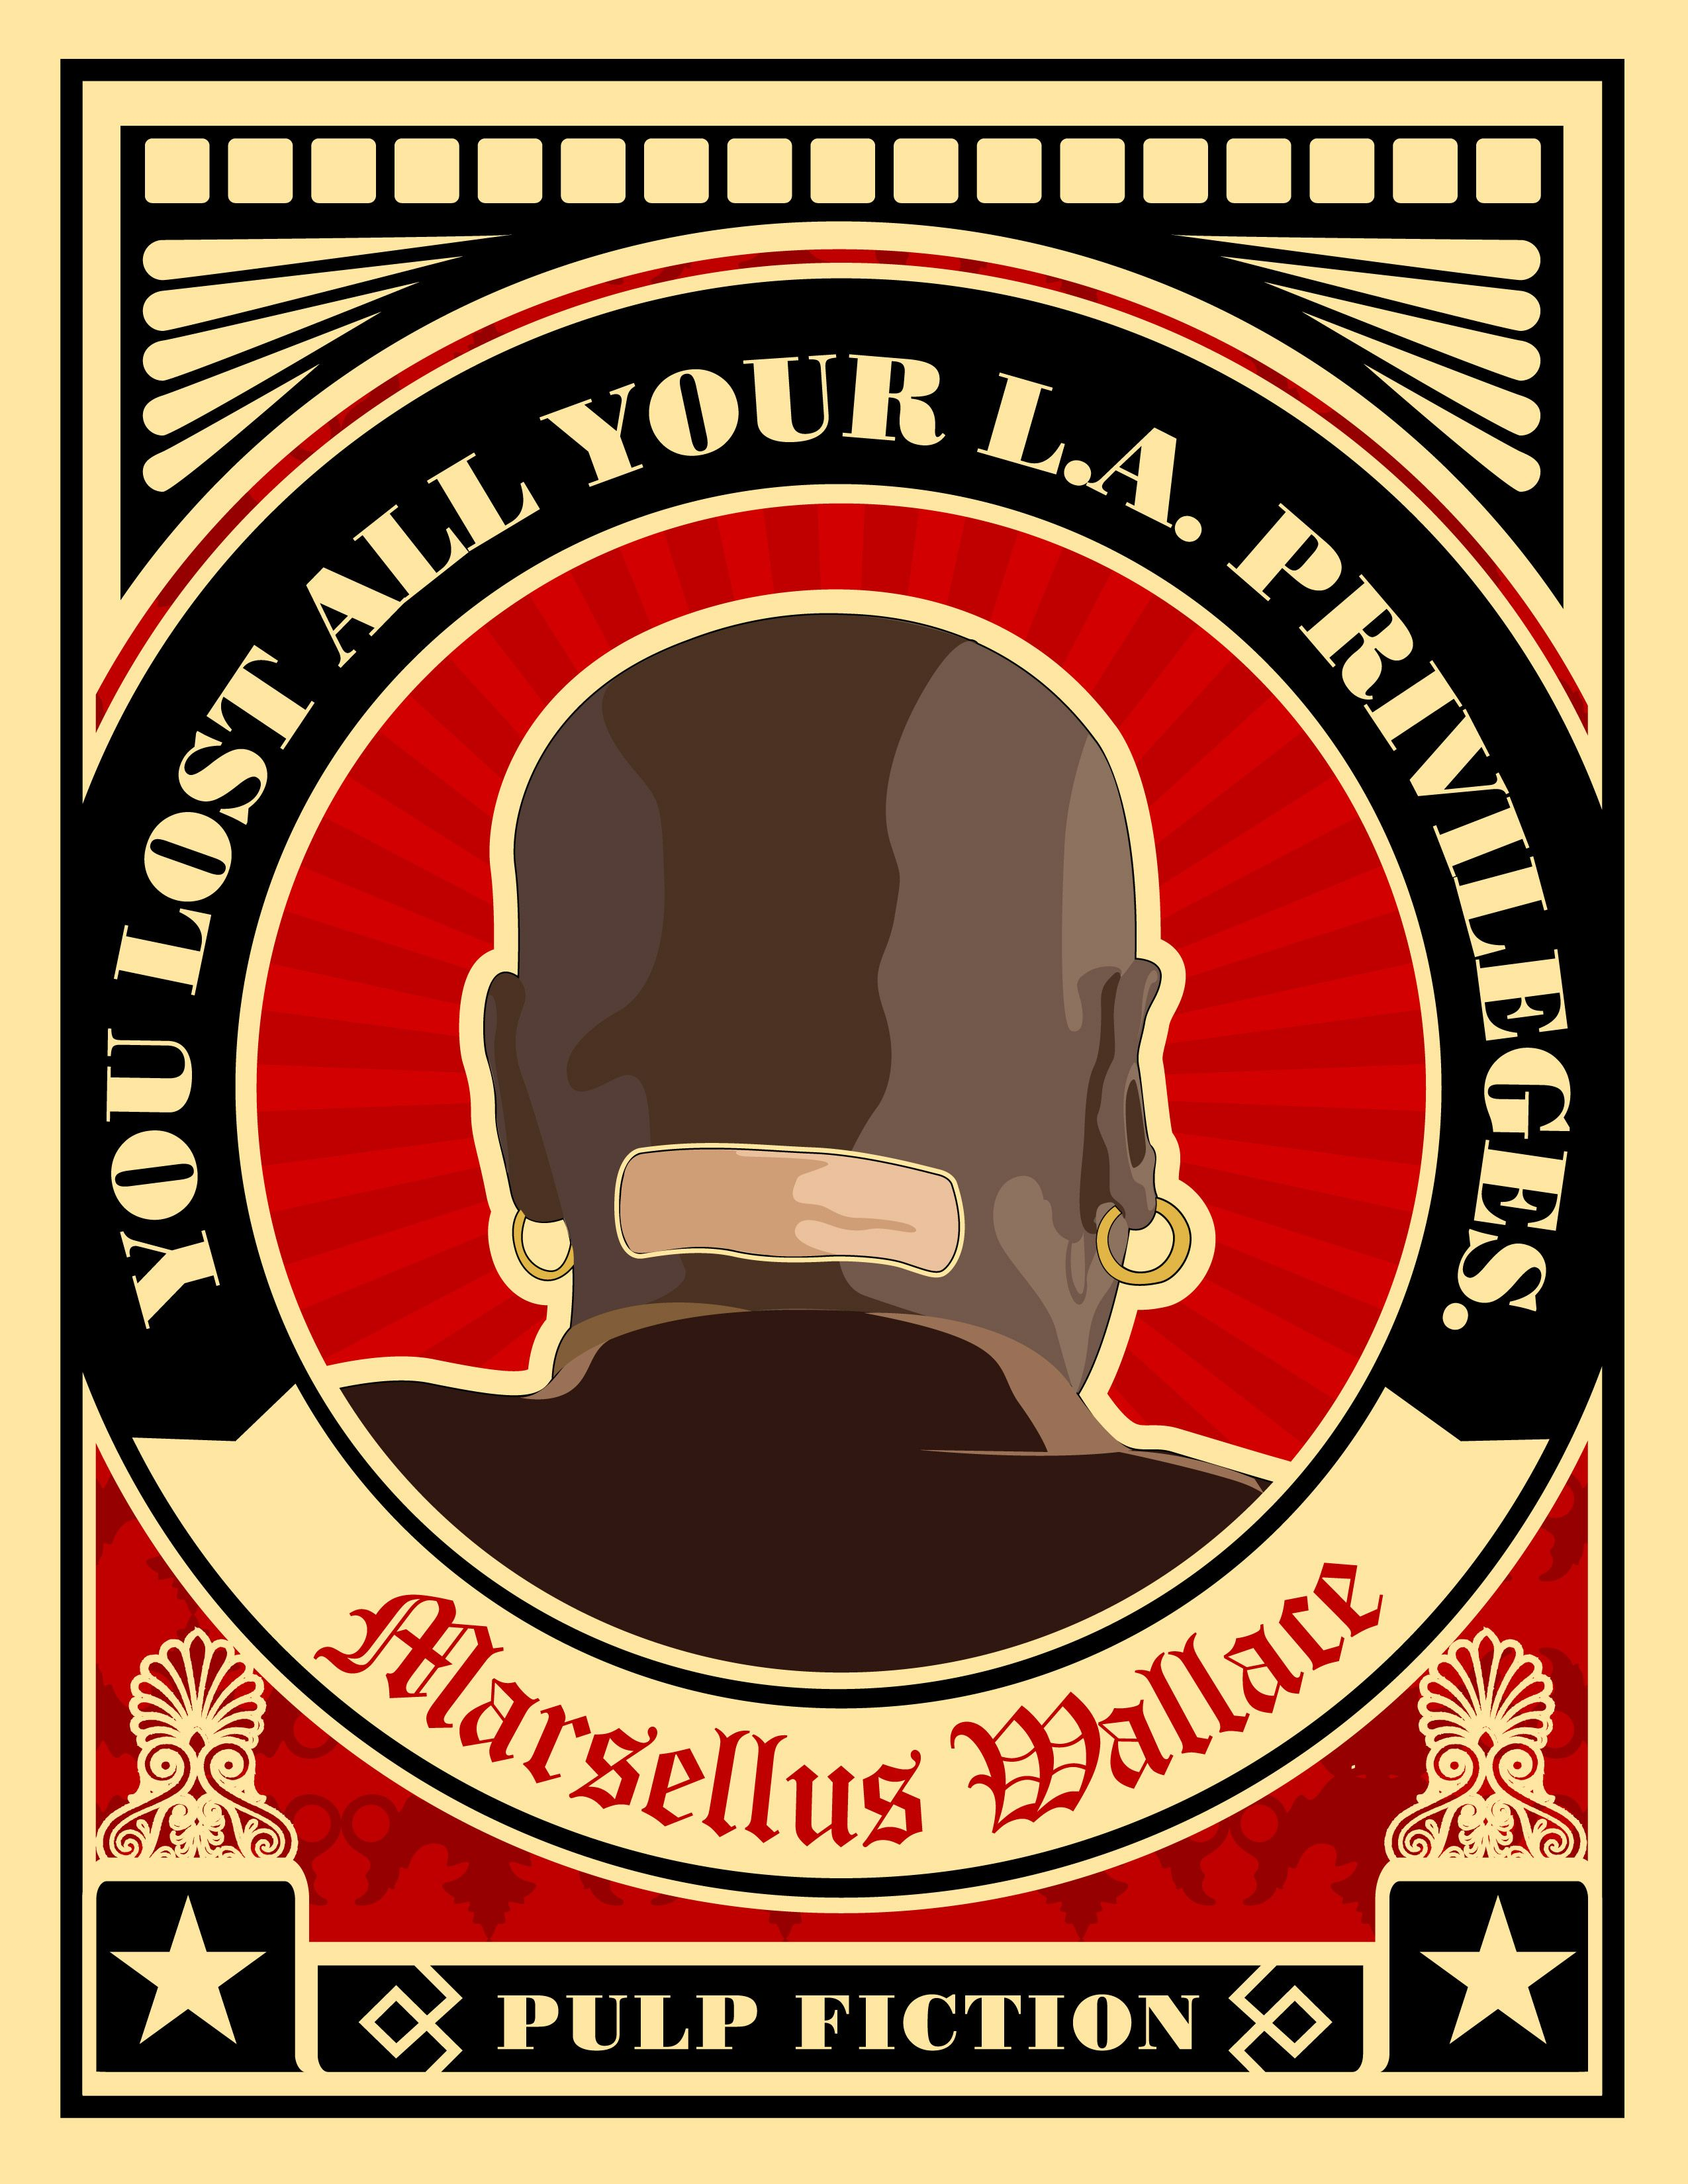 Marsellus wallace vector work pulp fiction quotes